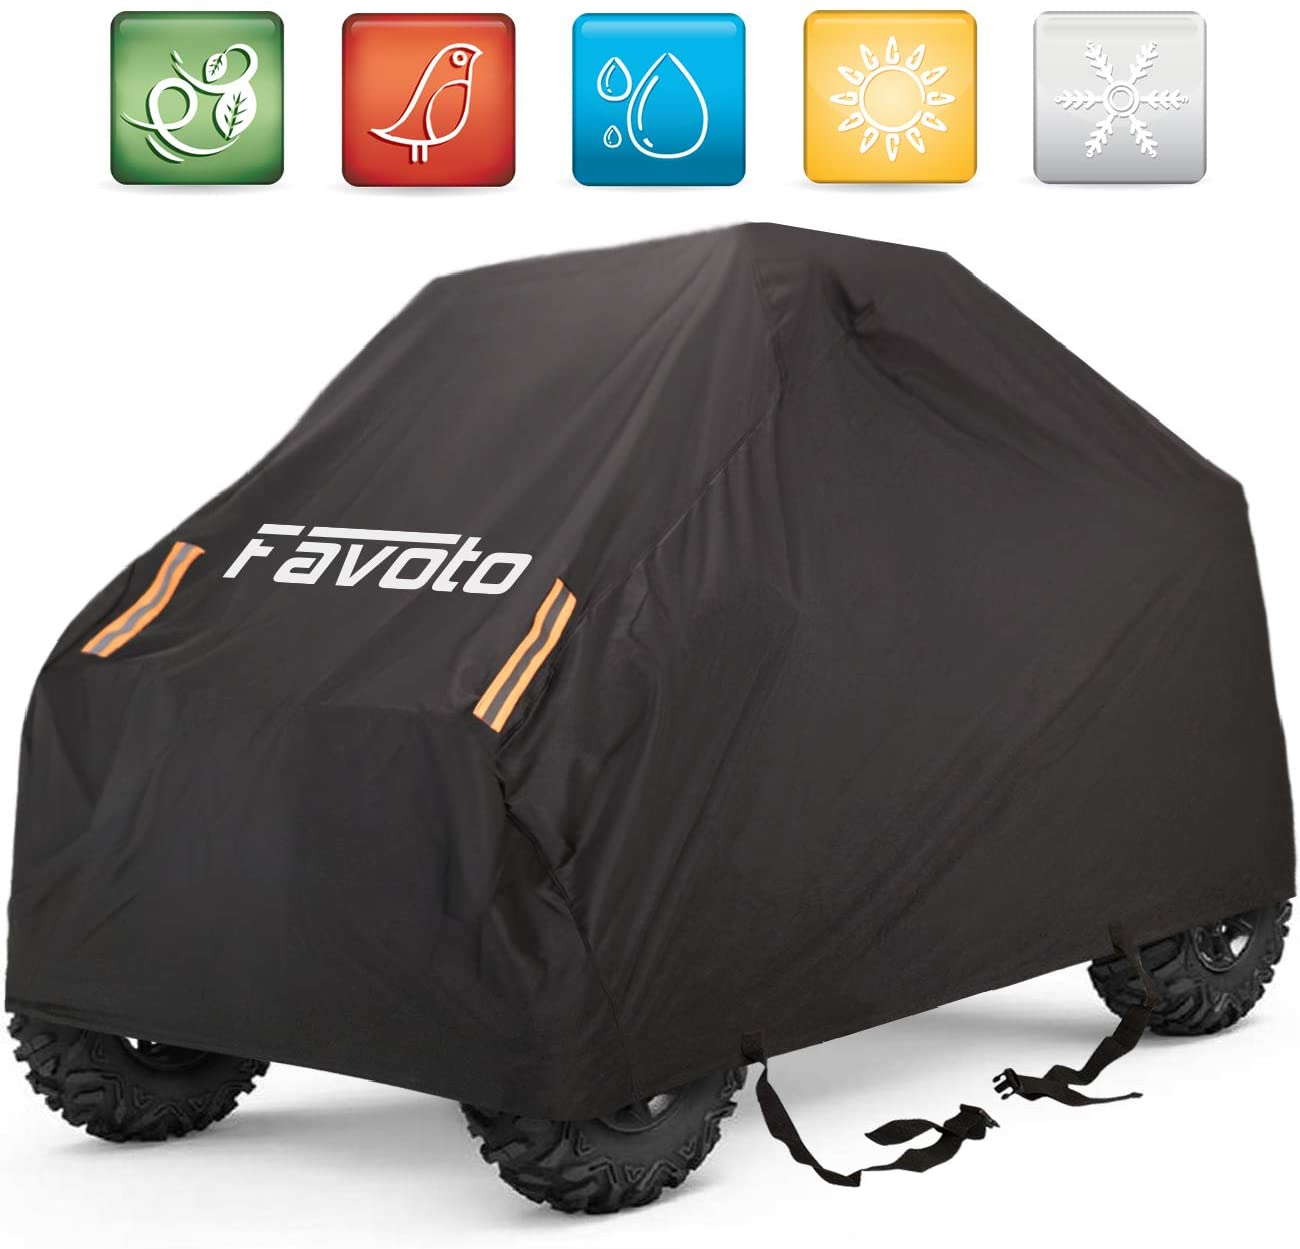 Favoto UTV Cover, Waterproof Oxford, 114 x 59 x 74.8 inches, with 4 Night Reflective Stripes and Carrying Bag, Dust Sun Wind Rain Leaves Outdoor Protection, Universal Fit 4 Wheeler Vehicle Cover